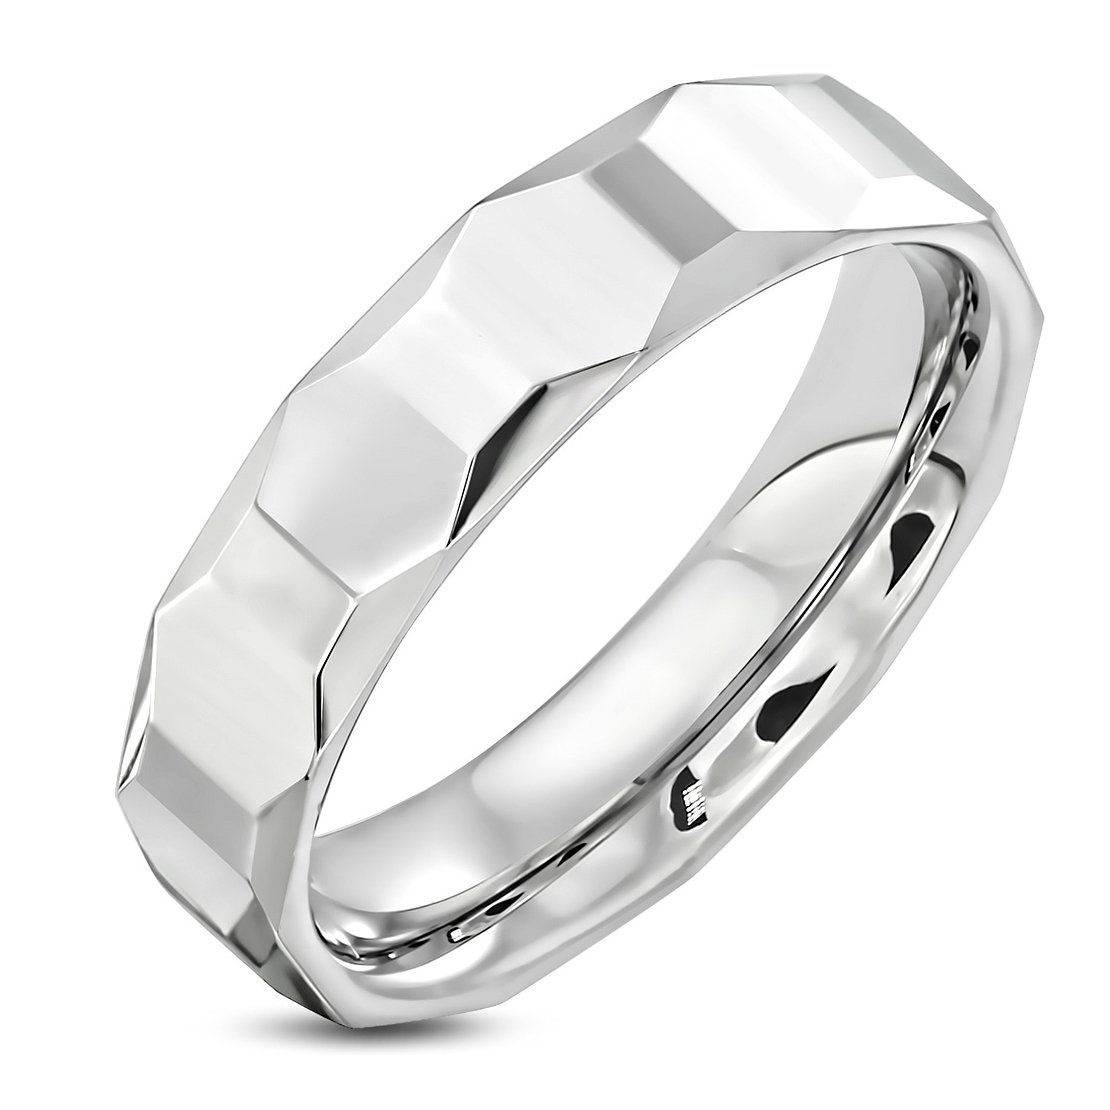 Tungsten Carbide Oval Faceted Comfort Fit Half-Round Band Ring